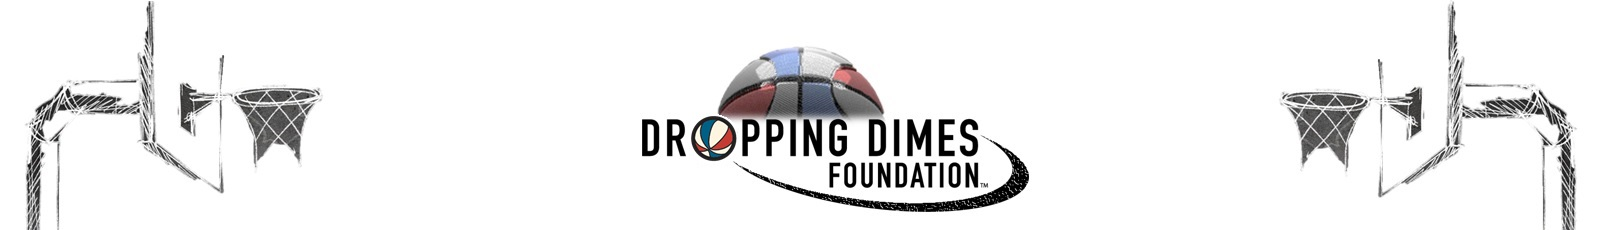 Dropping Dimes Foundation